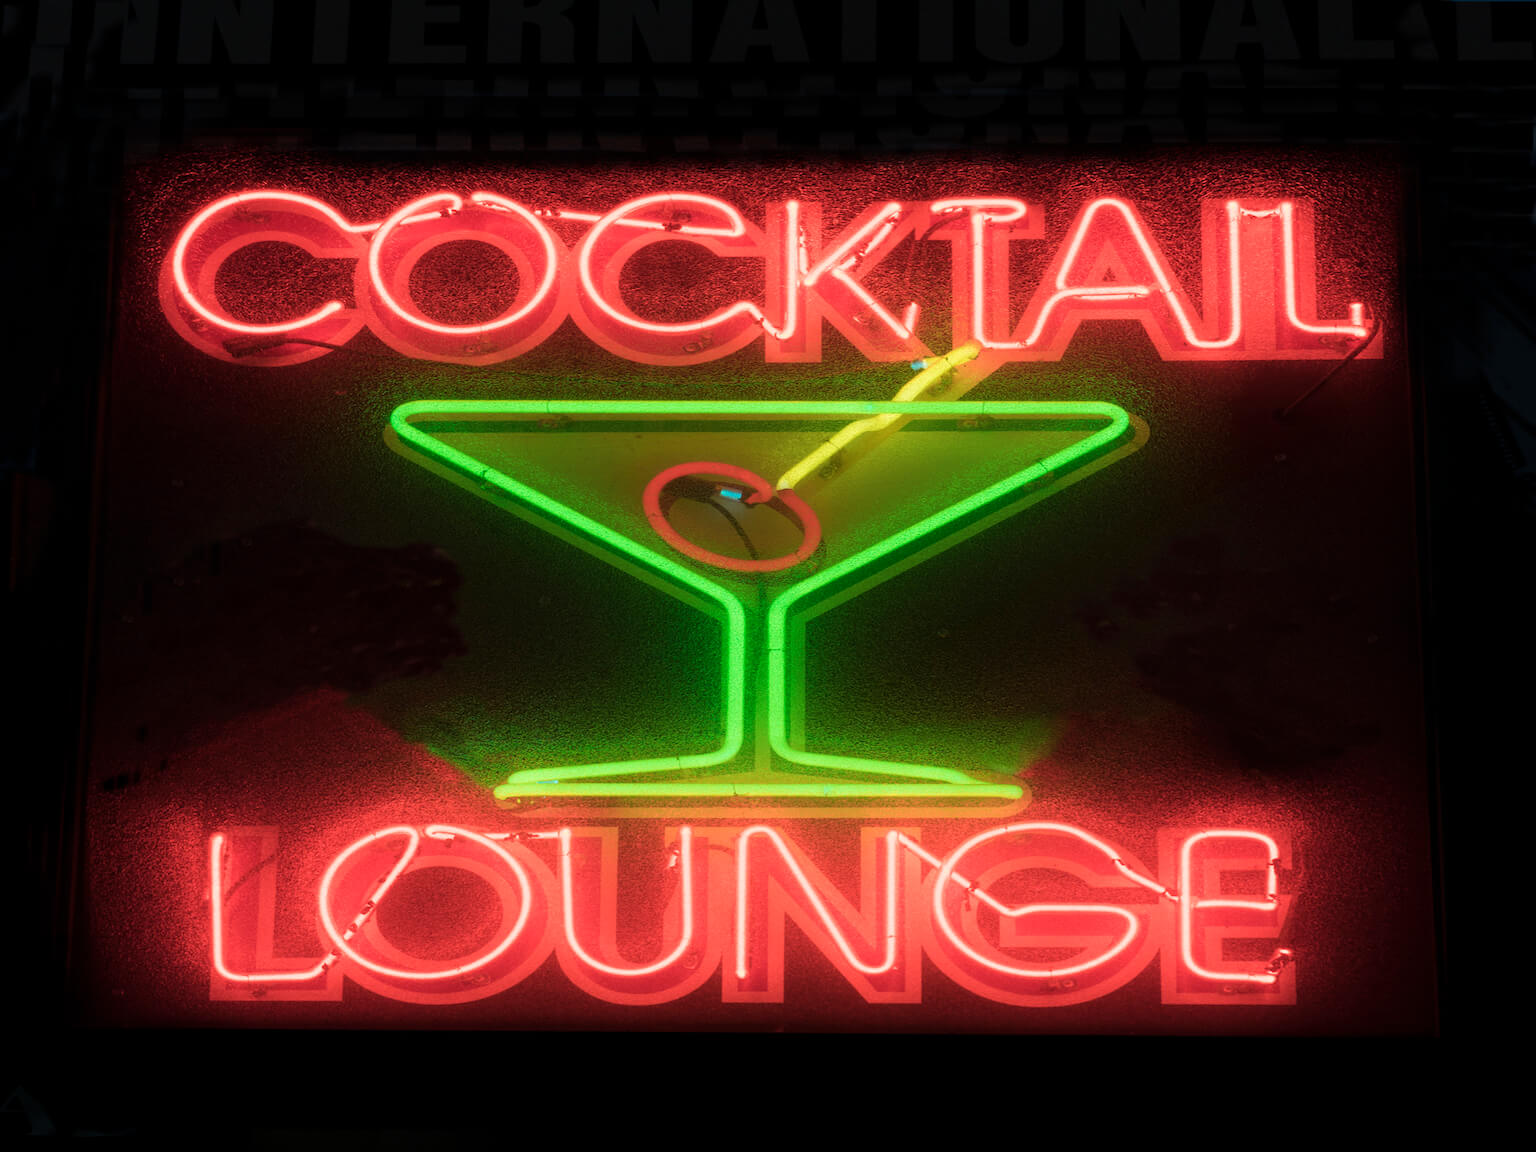 A red and green neon sign for a bar.